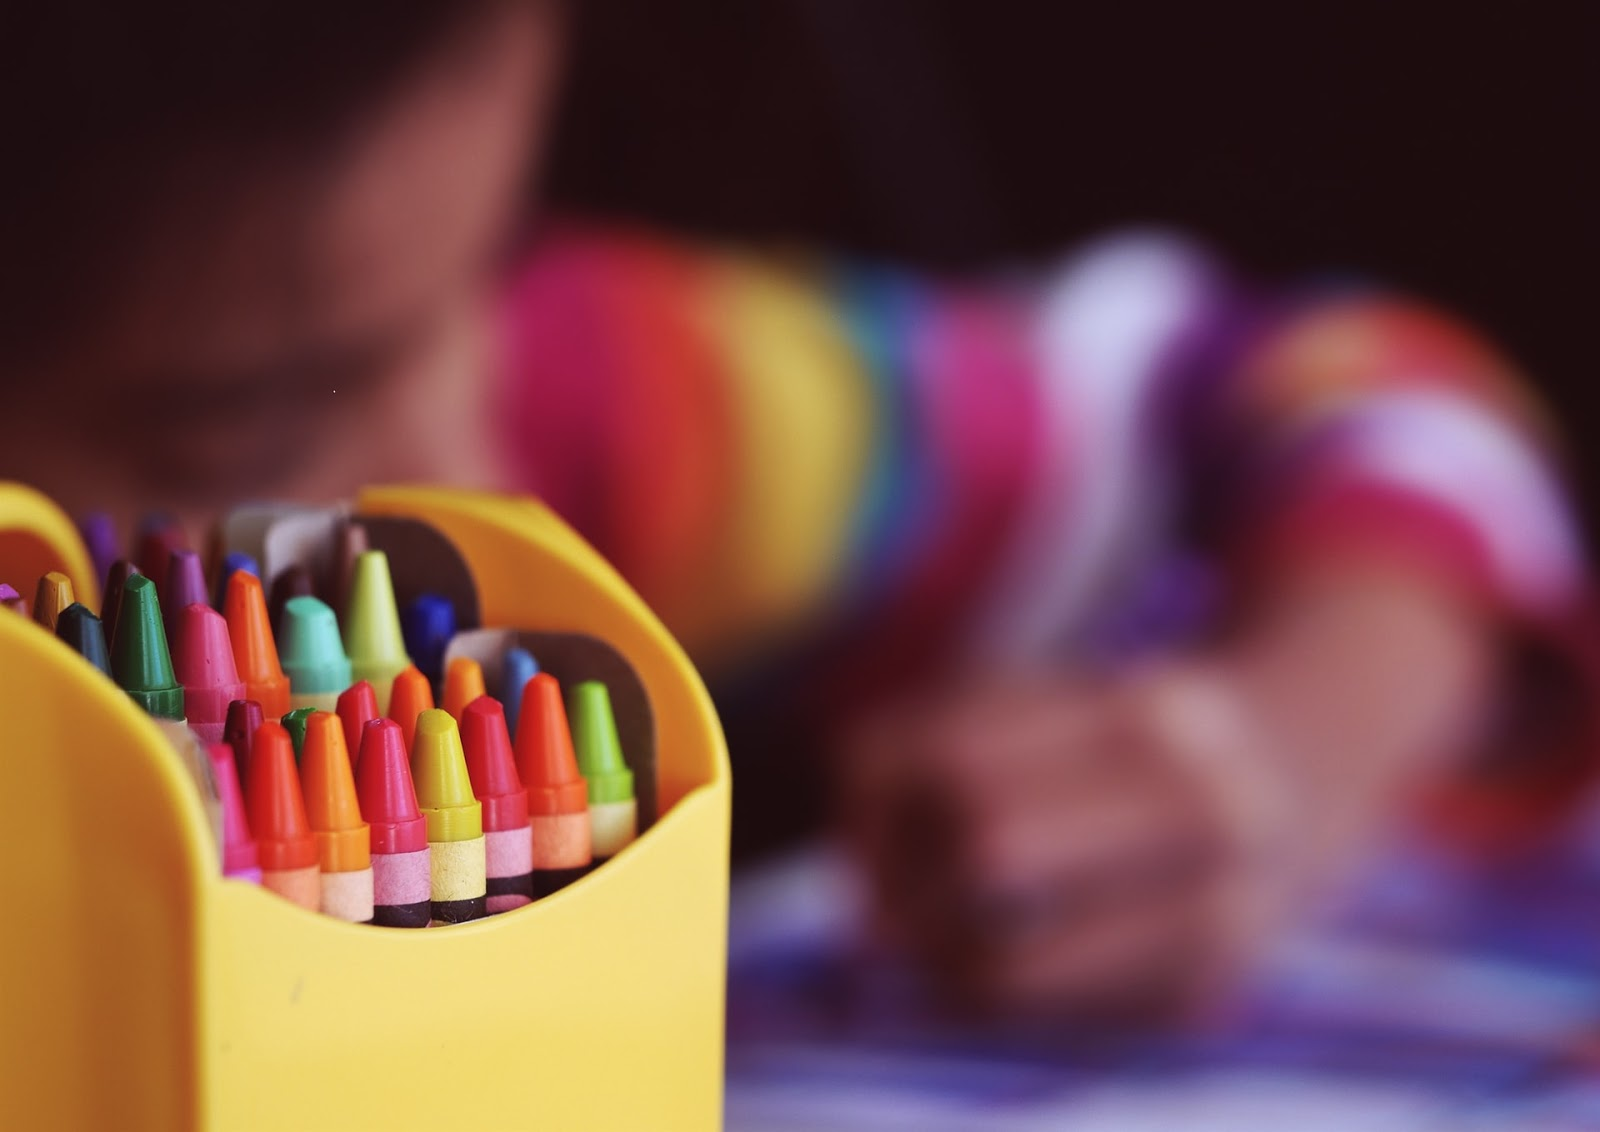 children's colouring crayons